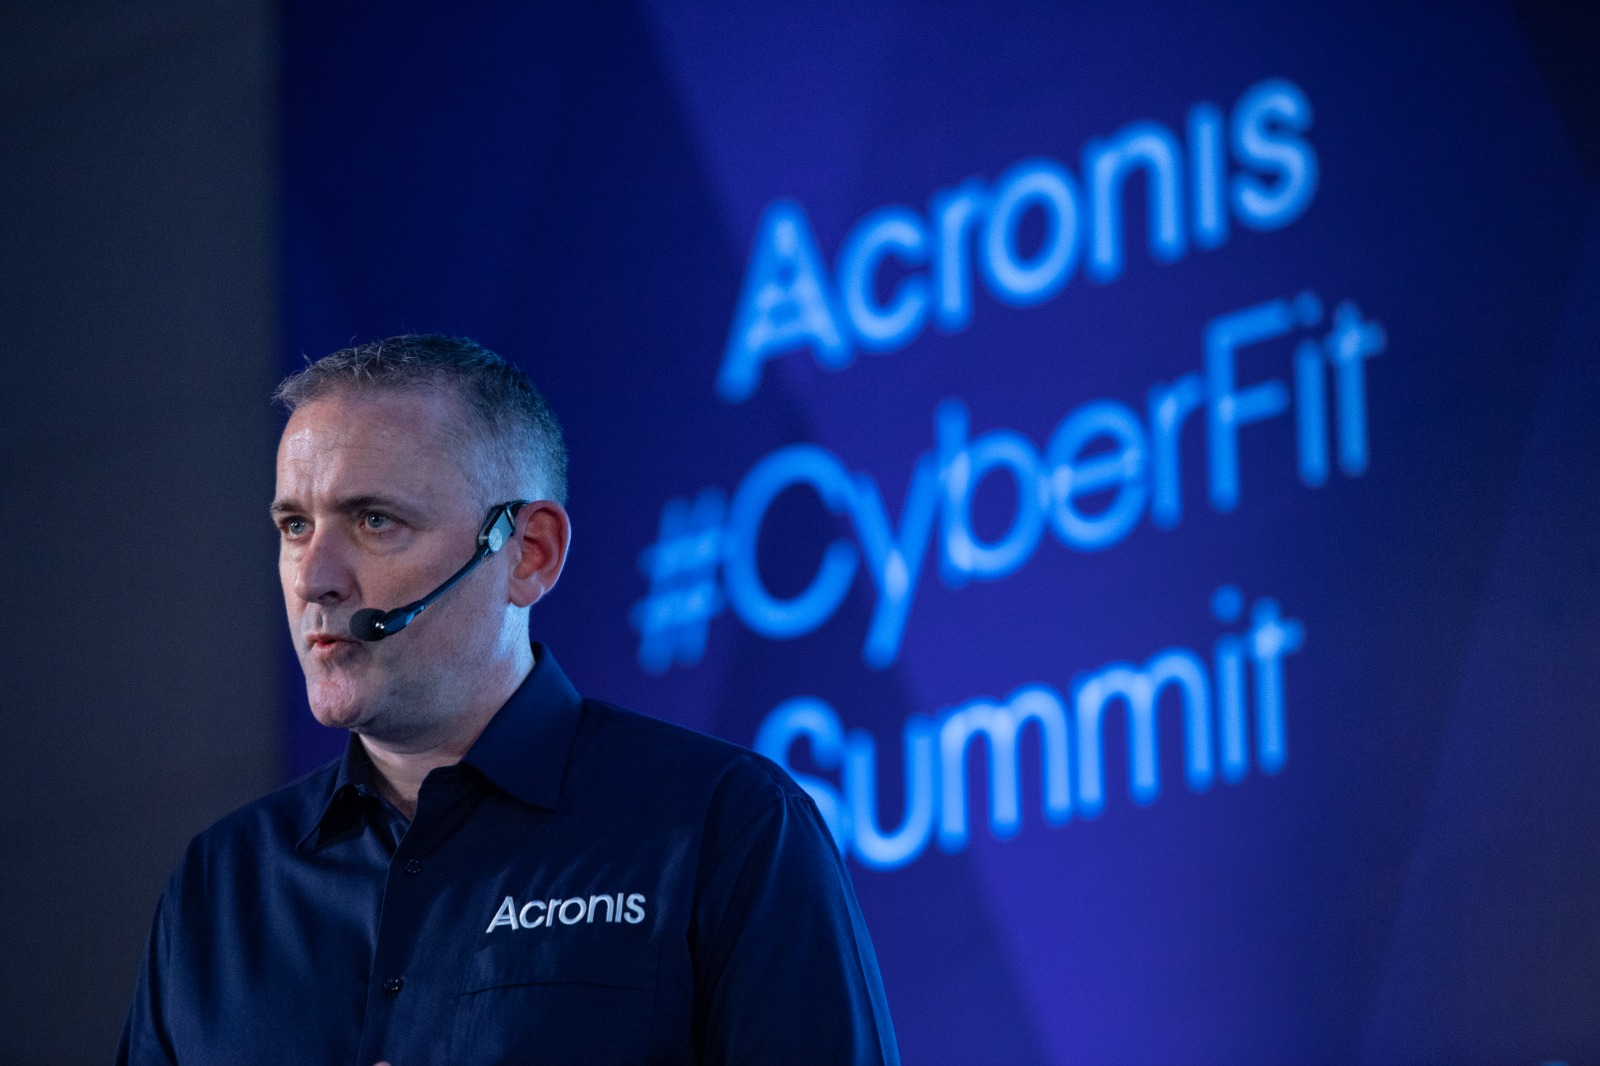 Ronan McCurtin shares more about the unique, integrated approach Acronis Cyber Protection solutions employ.